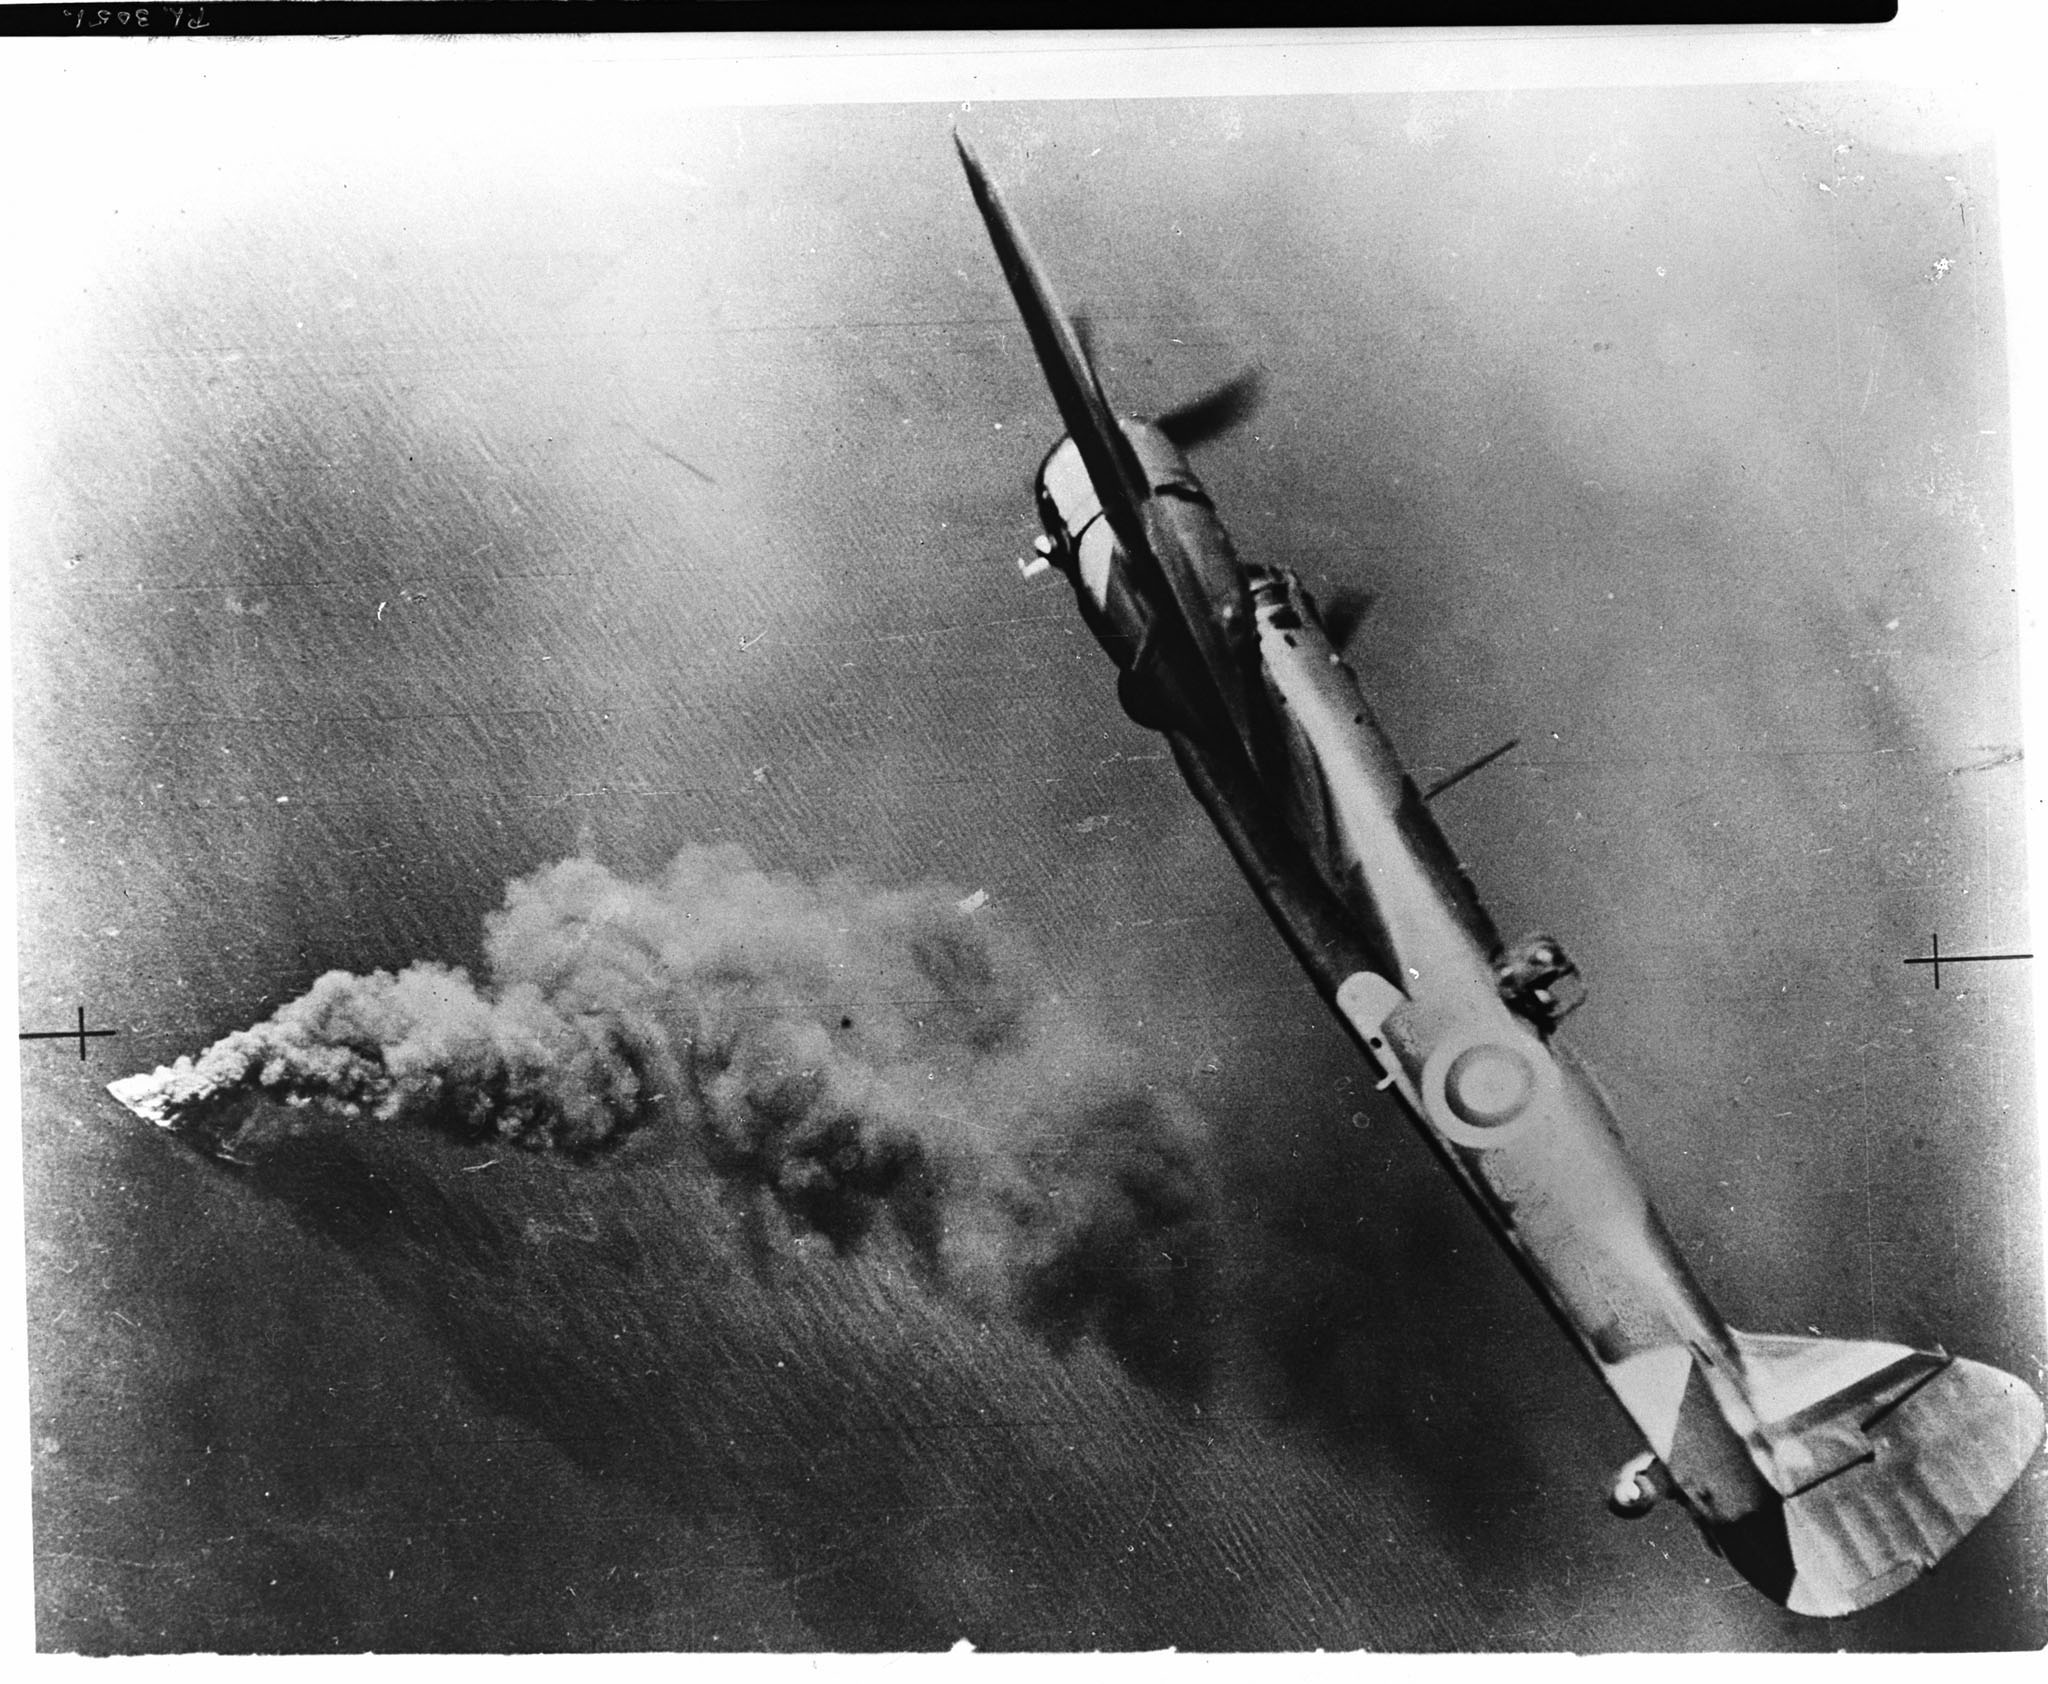 A Royal Air Force Bristol Blenheim bomber watches the end of an enemy tanker as, ablaze from stem to stern, she sinks in the Channel off the French coast. PHOTO: RAF